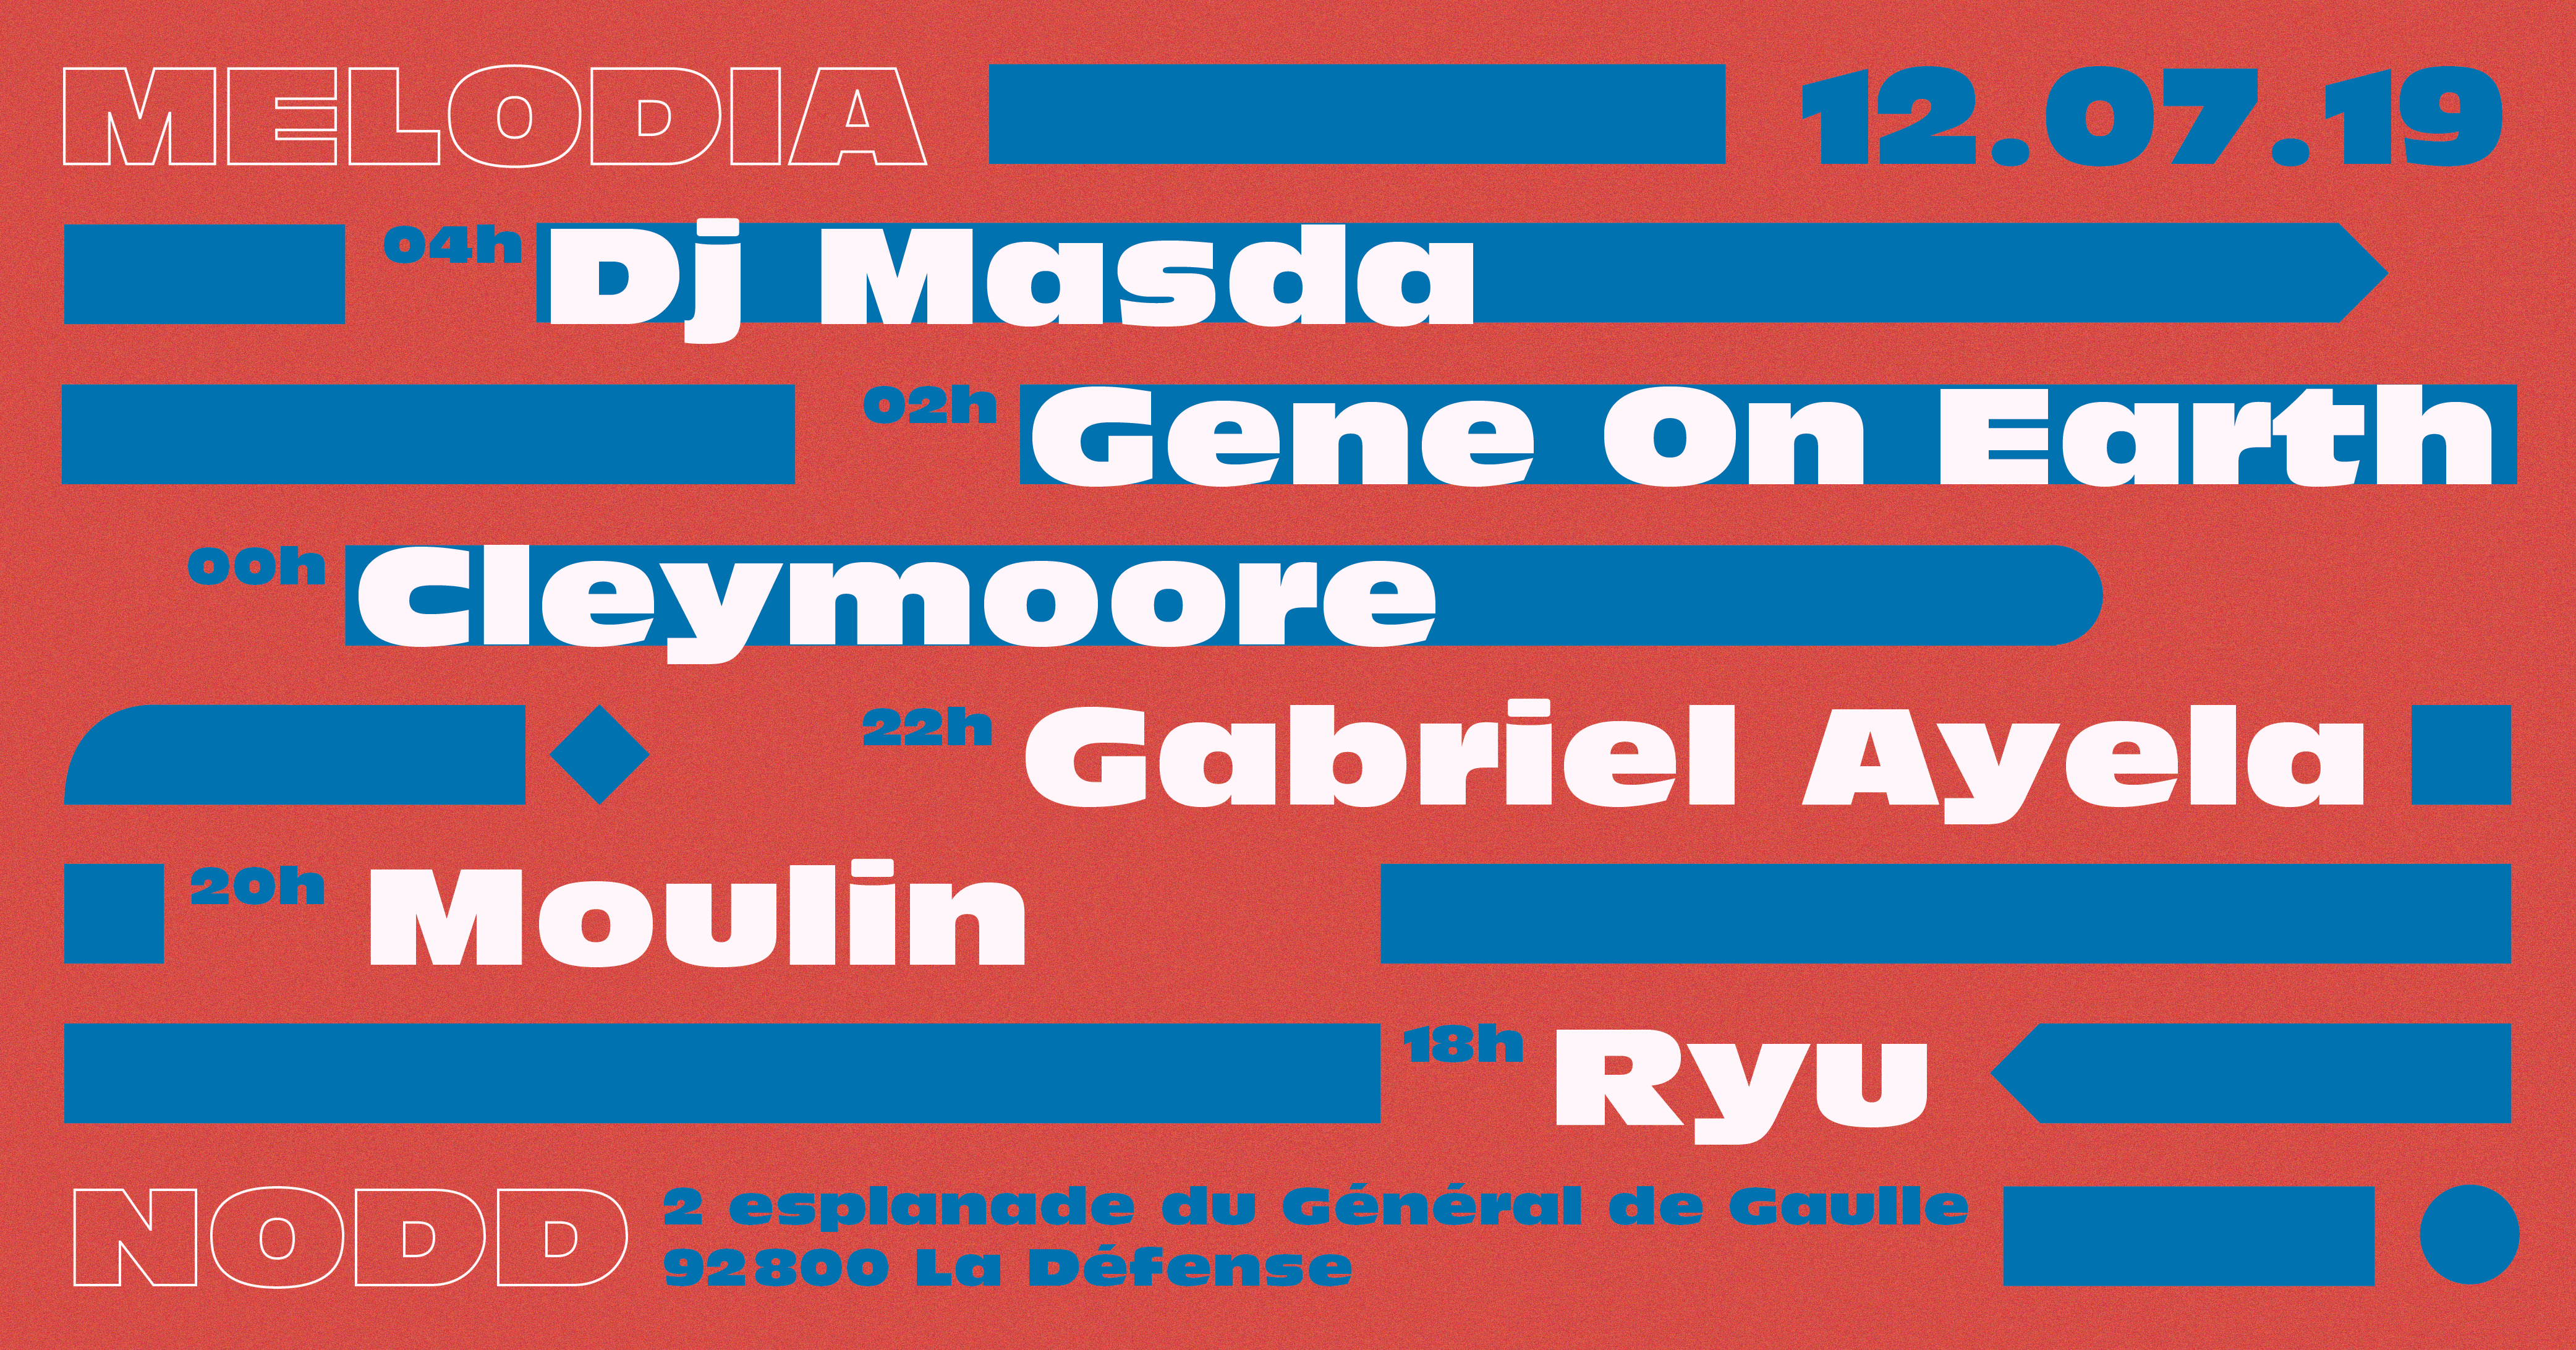 Melodia : DJ Masda, Gene On Earth, Cleymoore and more